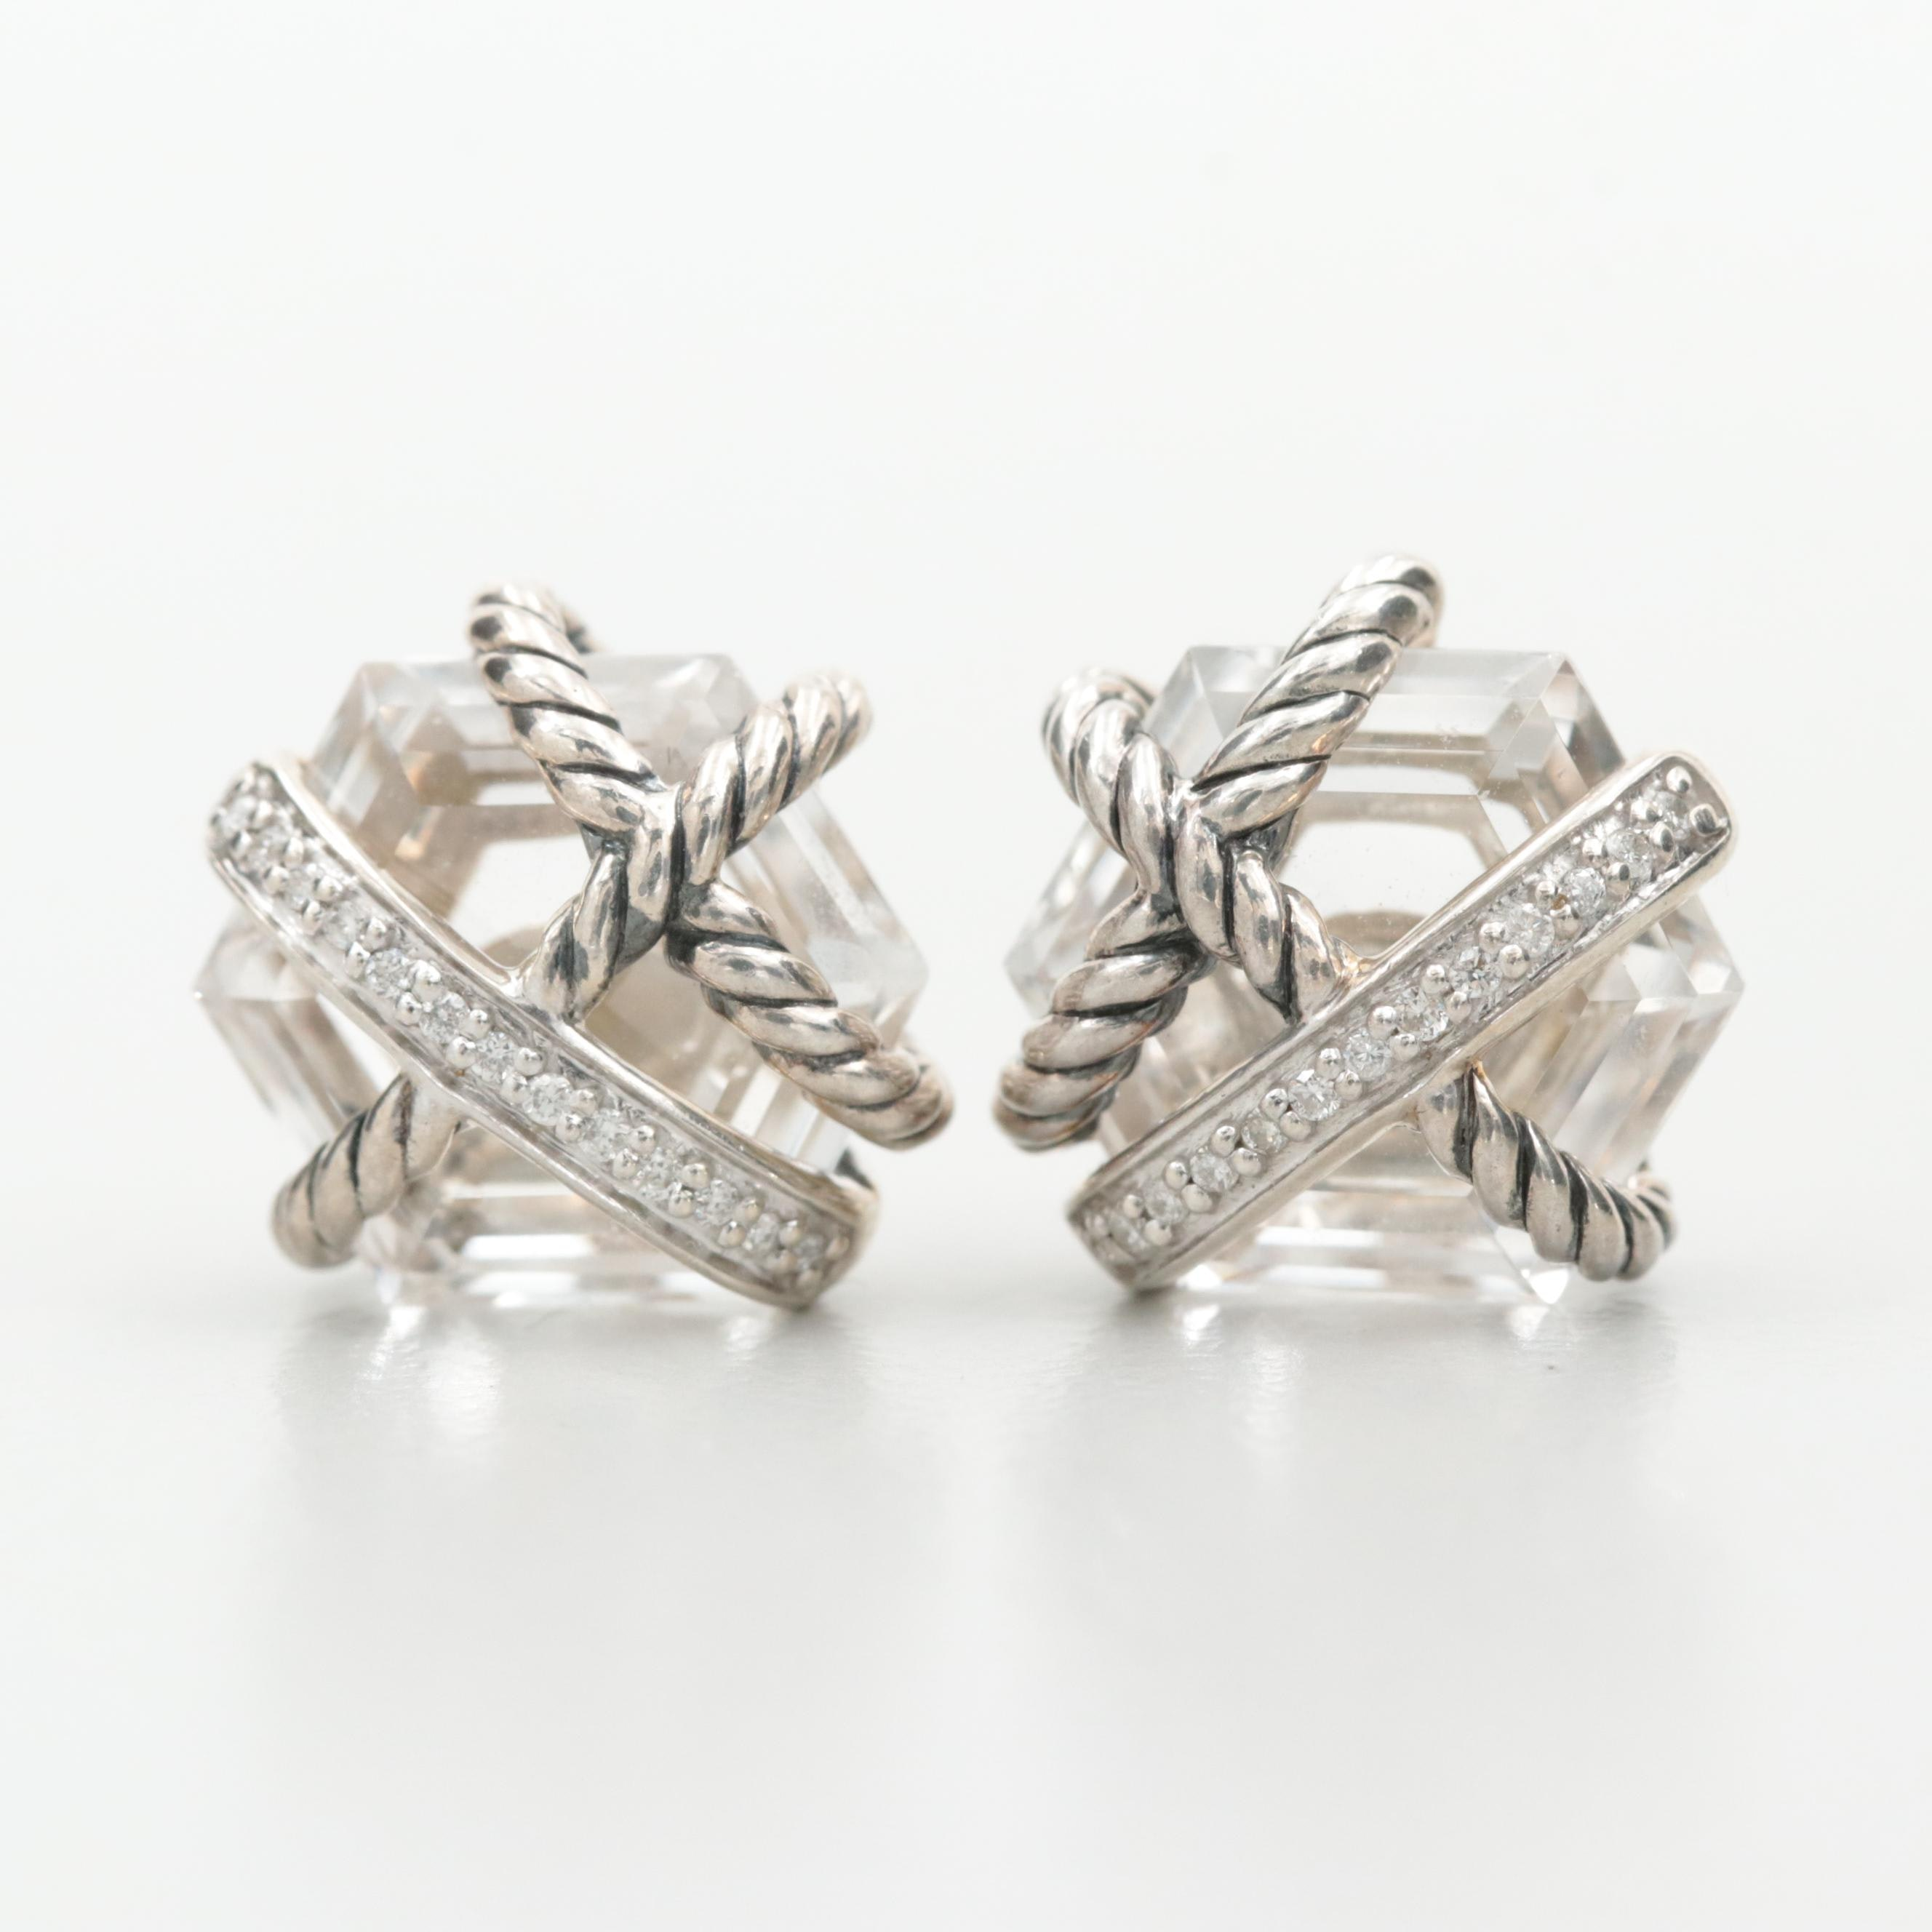 David Yurman Sterling Silver Quartz and Diamond Cable Wrap Stud Earrings